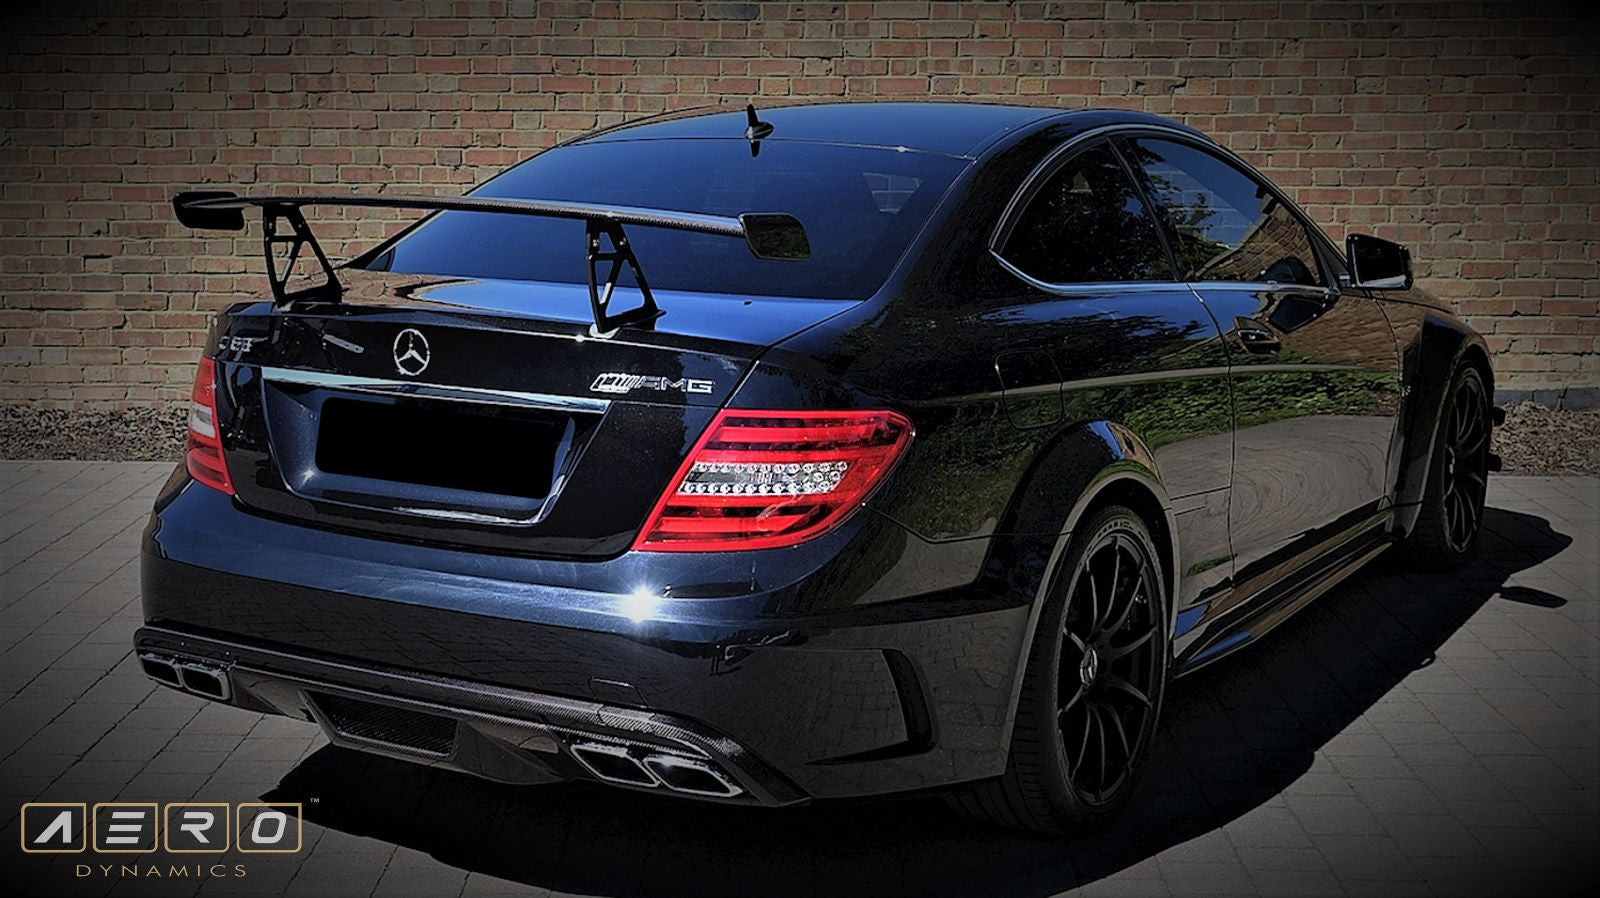 Aero Dynamics Heckflügel Black Series Design für Mercedes-Benz C63 C204 Coupe AMG - Boden Visuals